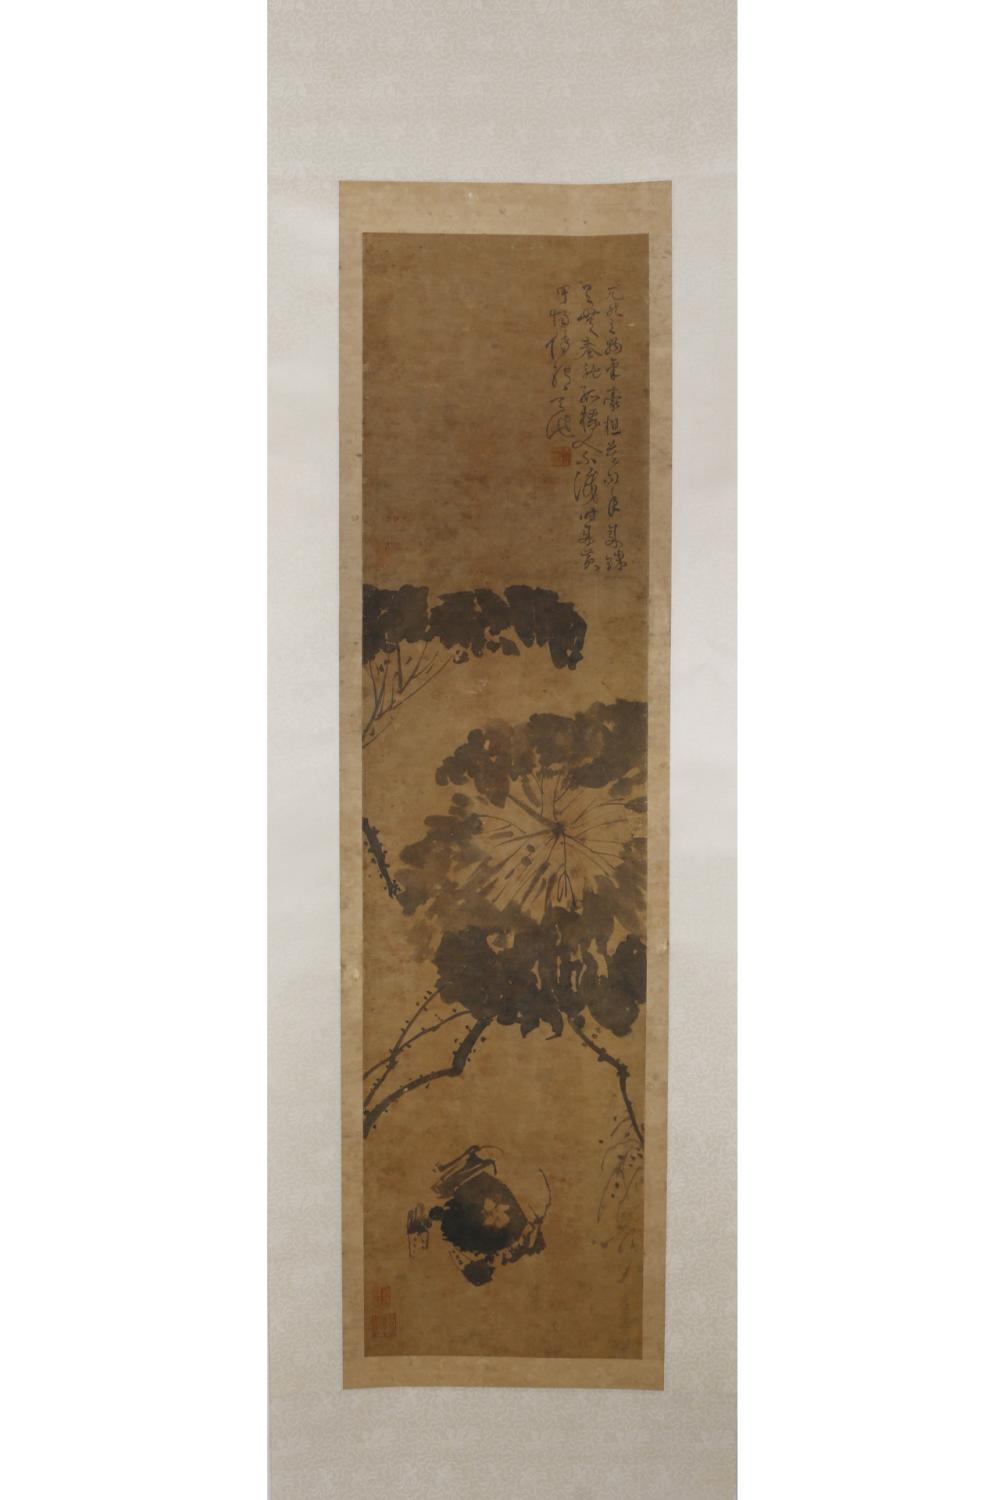 CHINESE INK PAINTING OF LOTUS FLOWER AND A CRAB